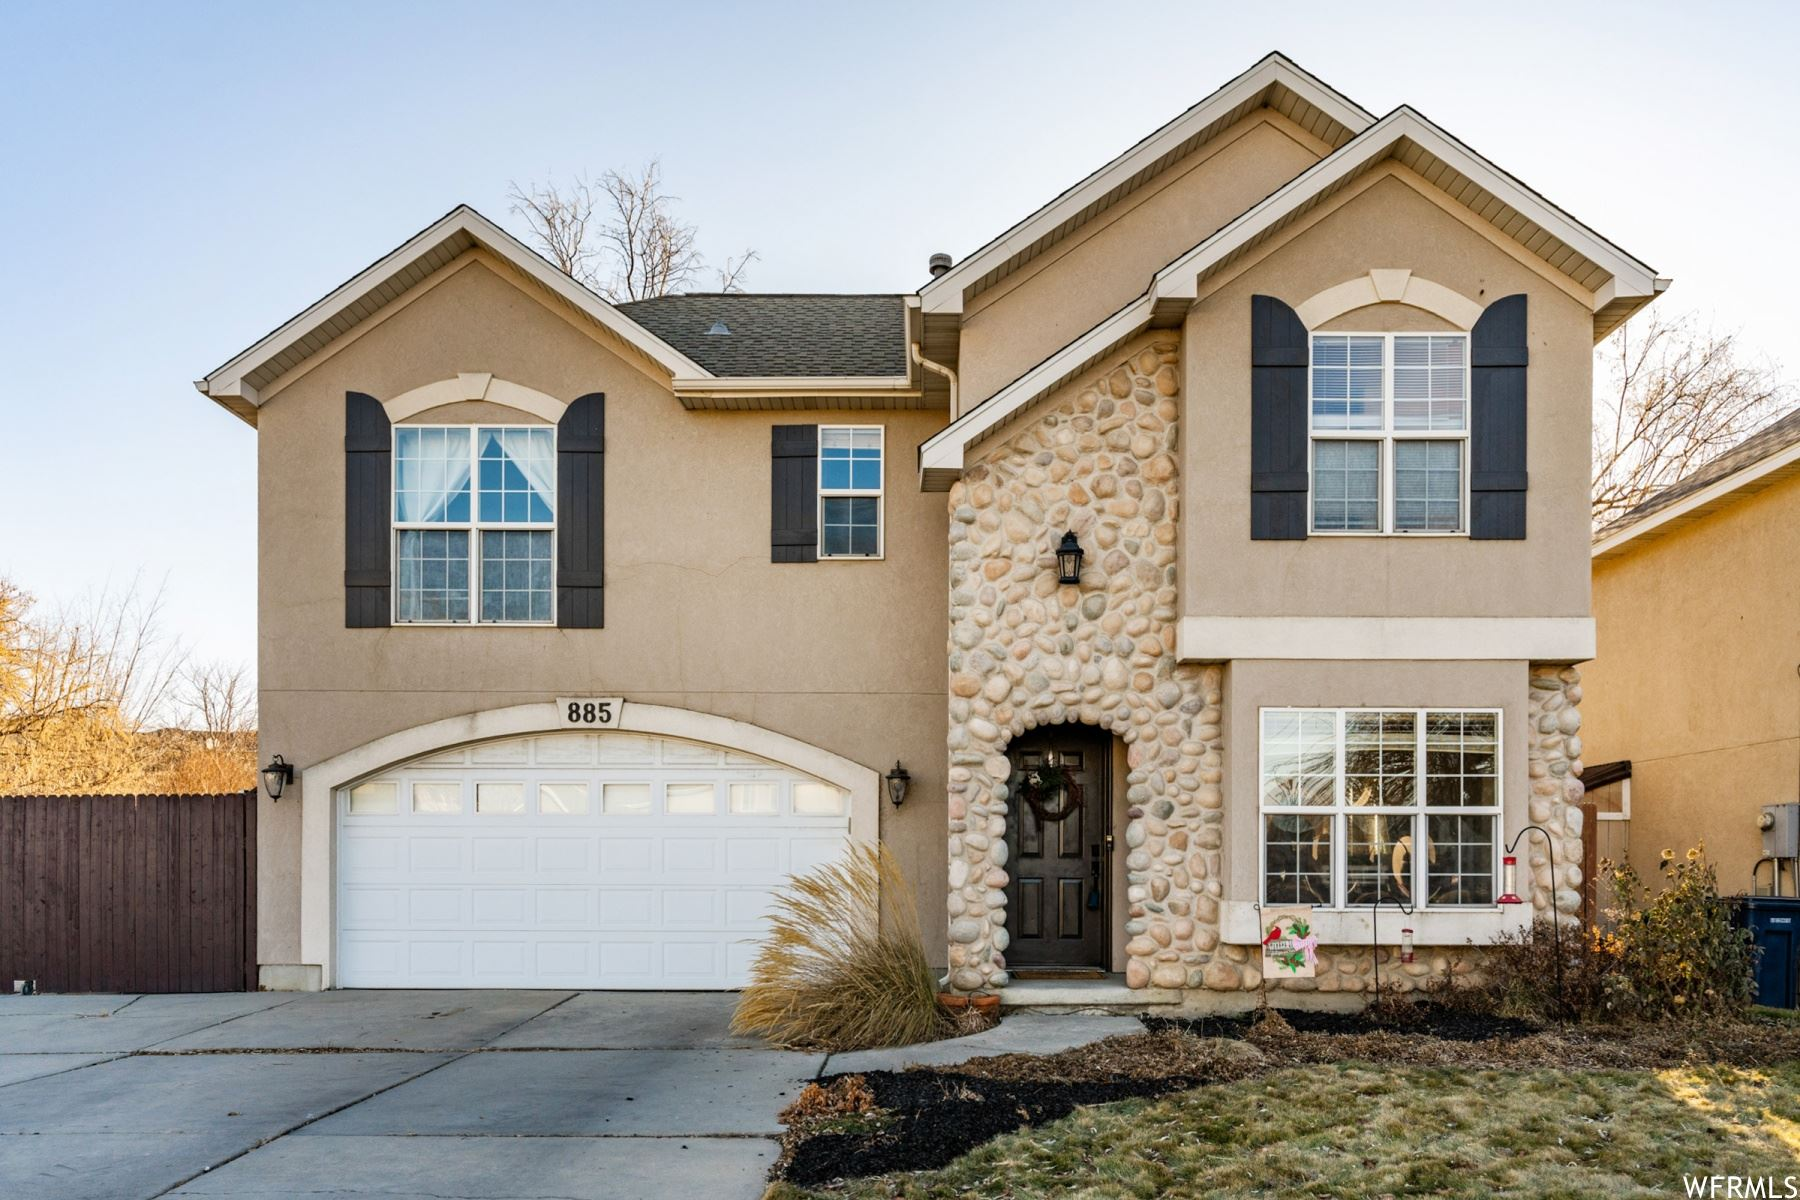 Photo of 885 W CHARTRES S AVE, Sandy, UT 84070 (MLS # 1720963)